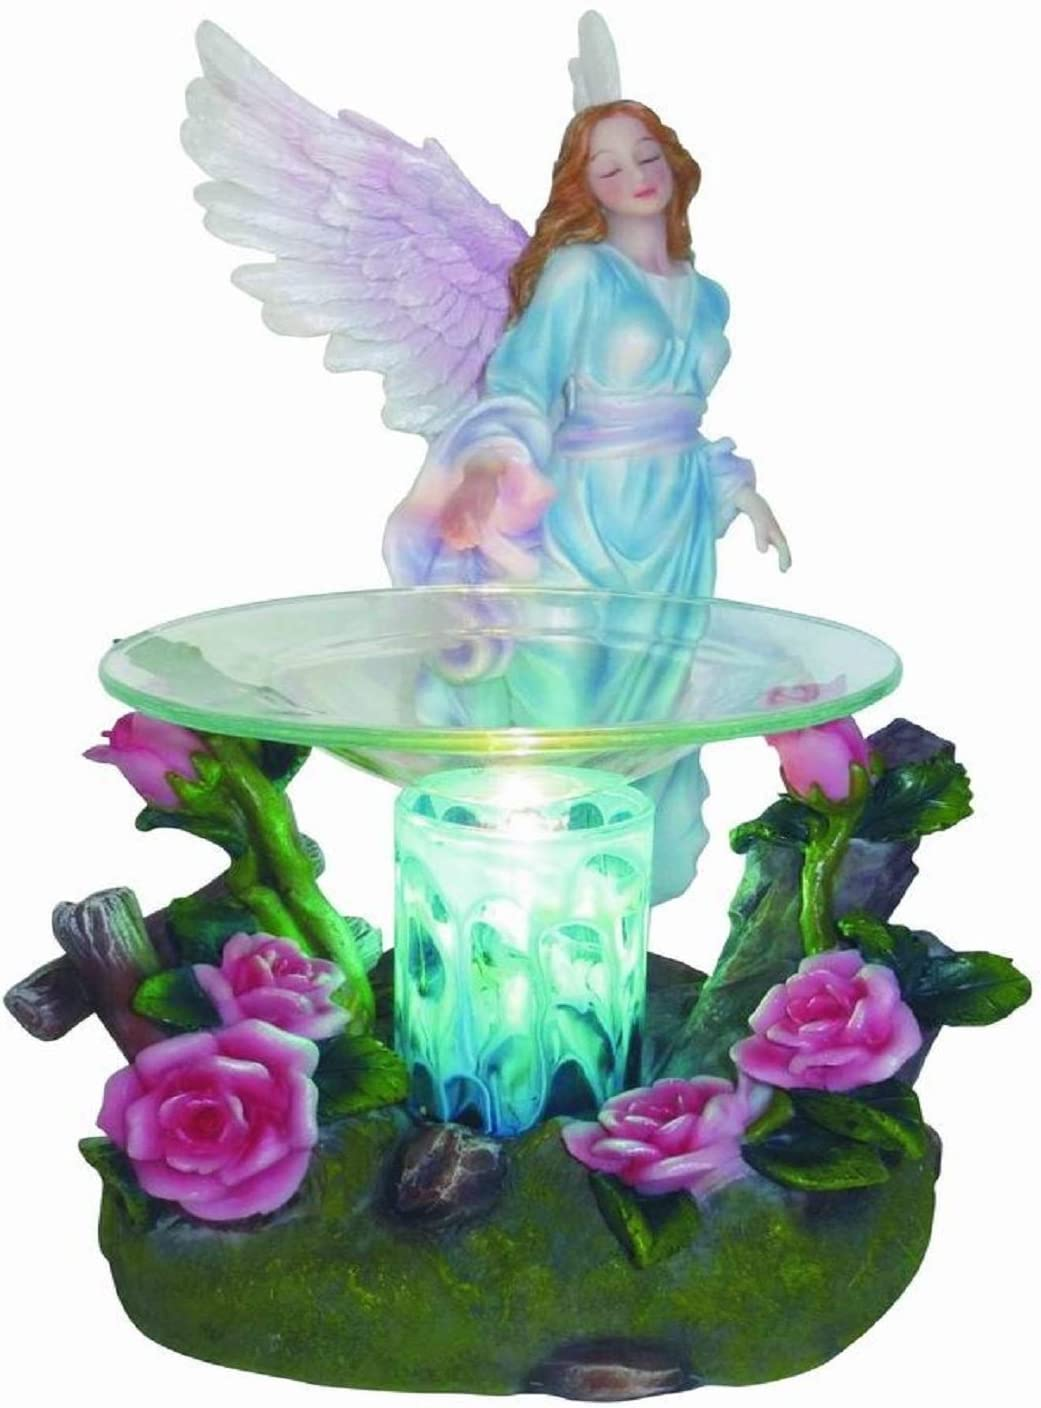 VCS Blue Angel Poly Resin Electric Tart/Oil Warmer with Dimmer Switch